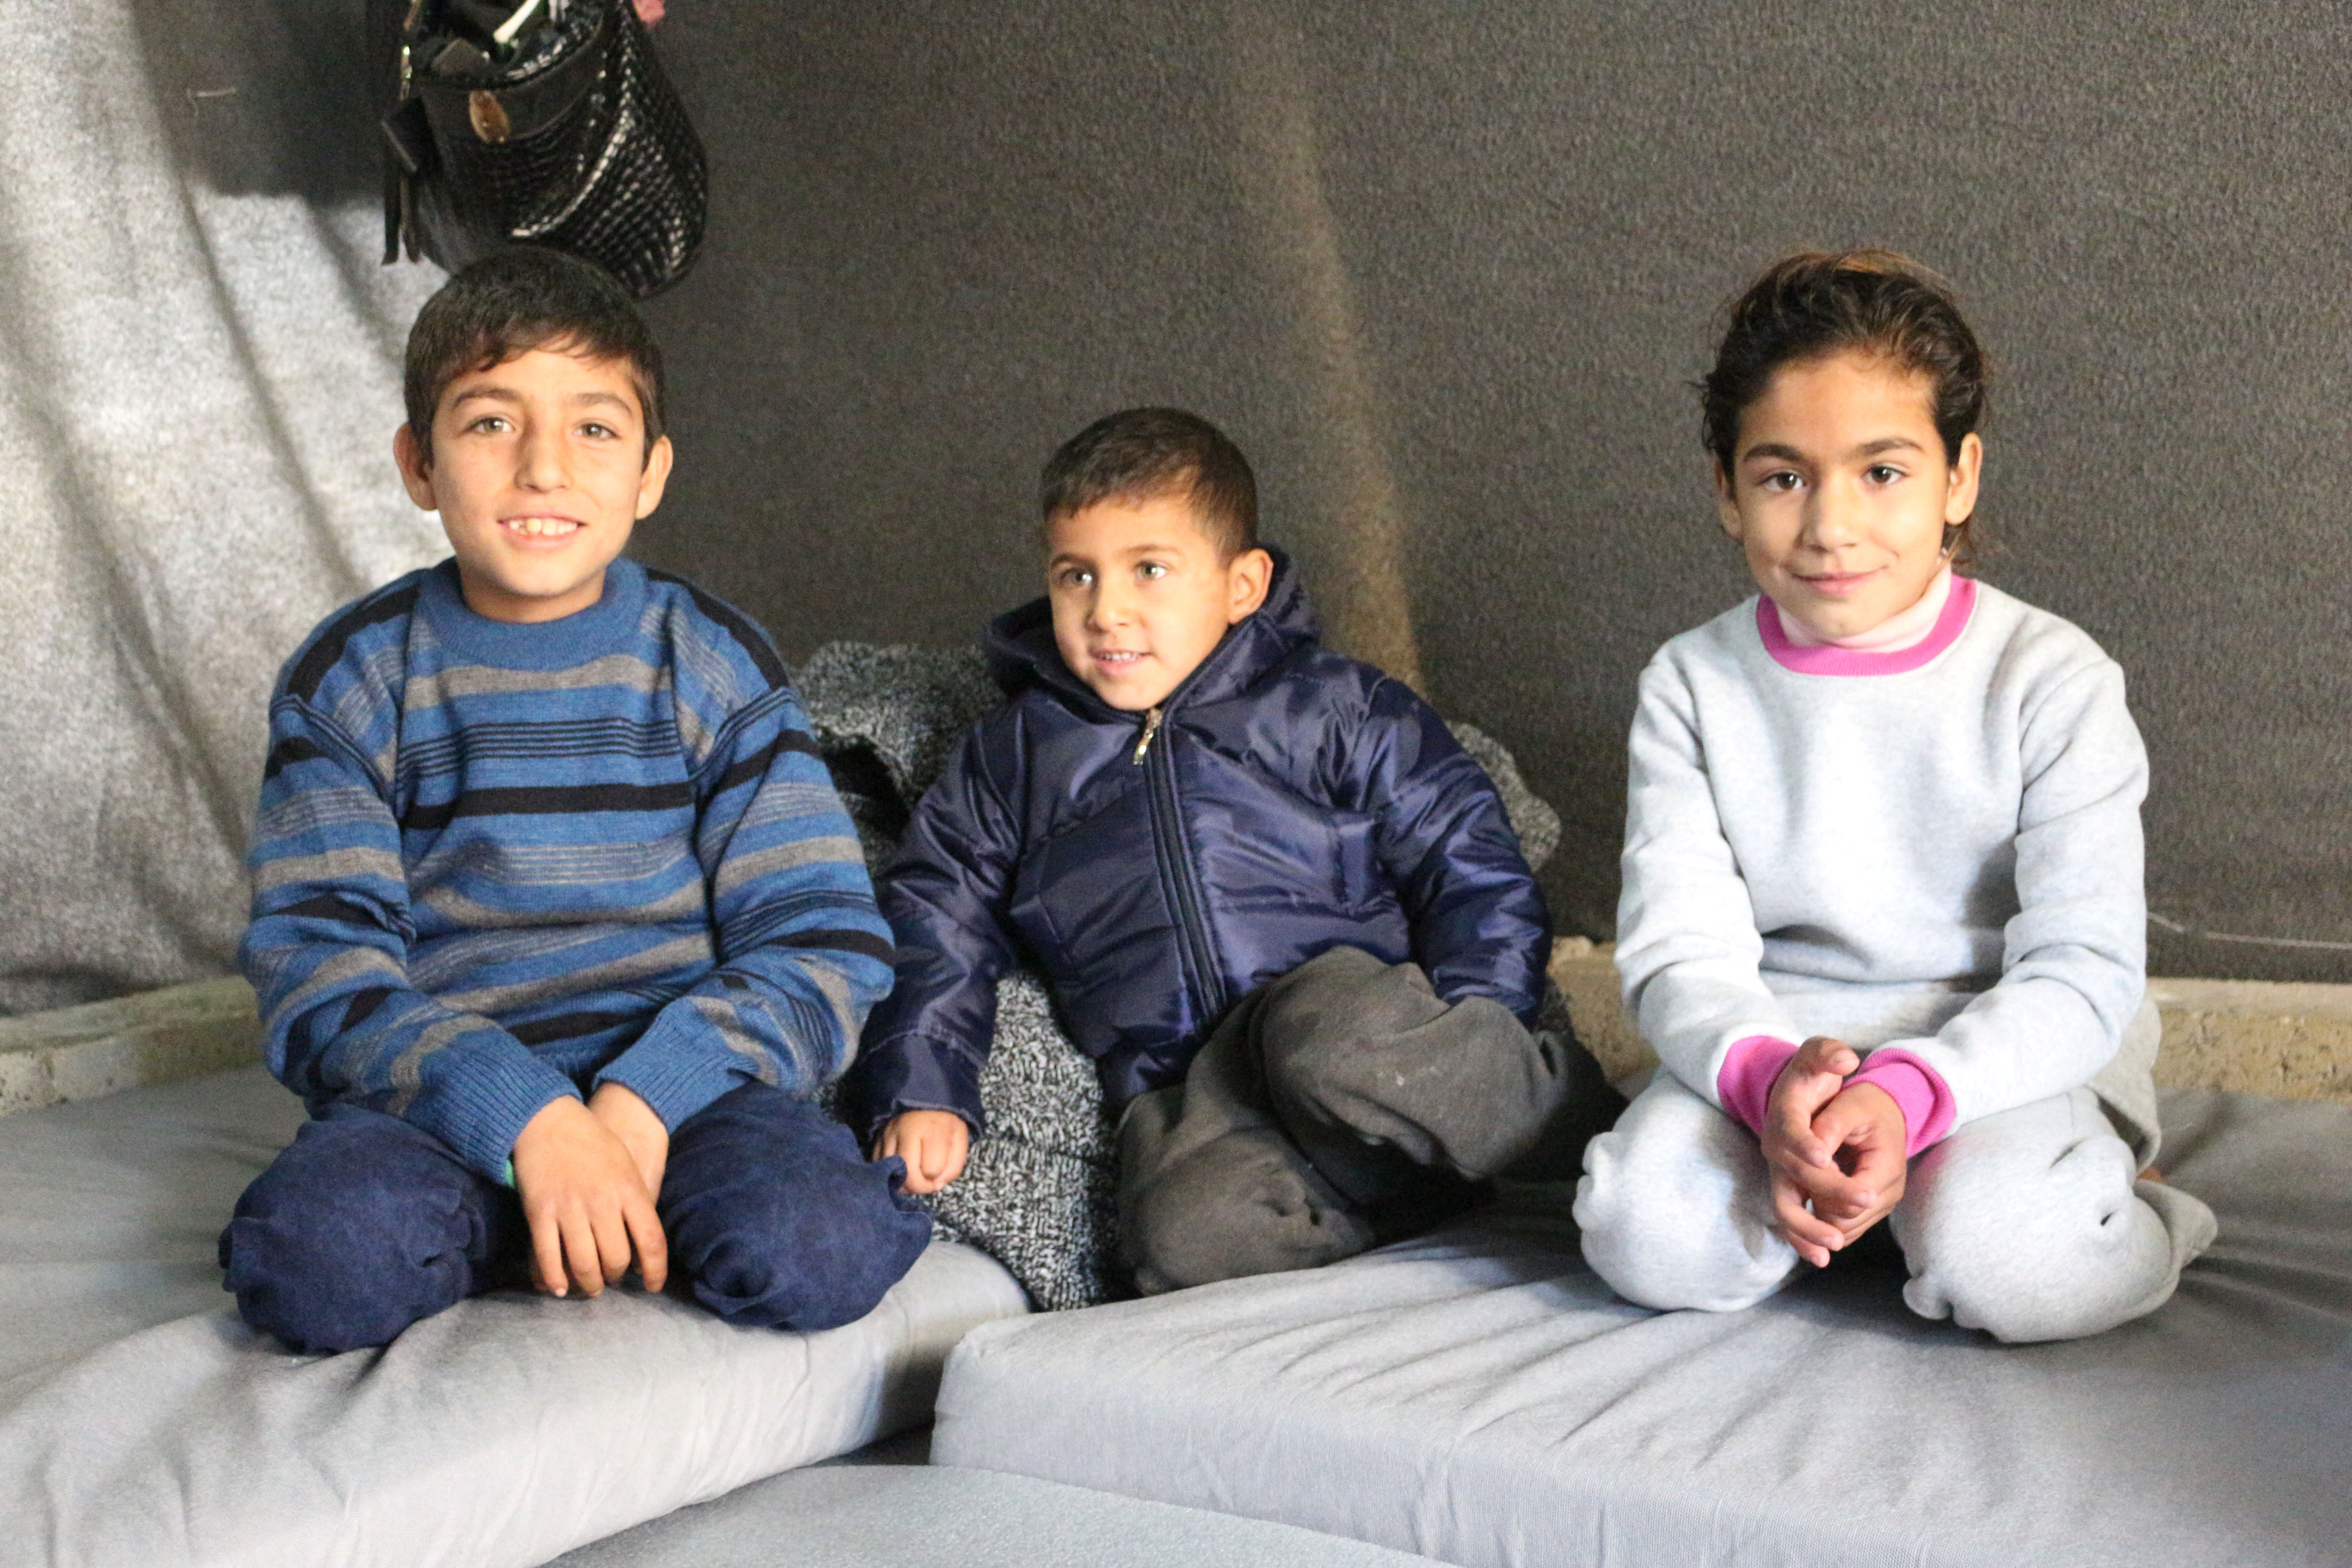 Mohammed's children are much cozier in the tent